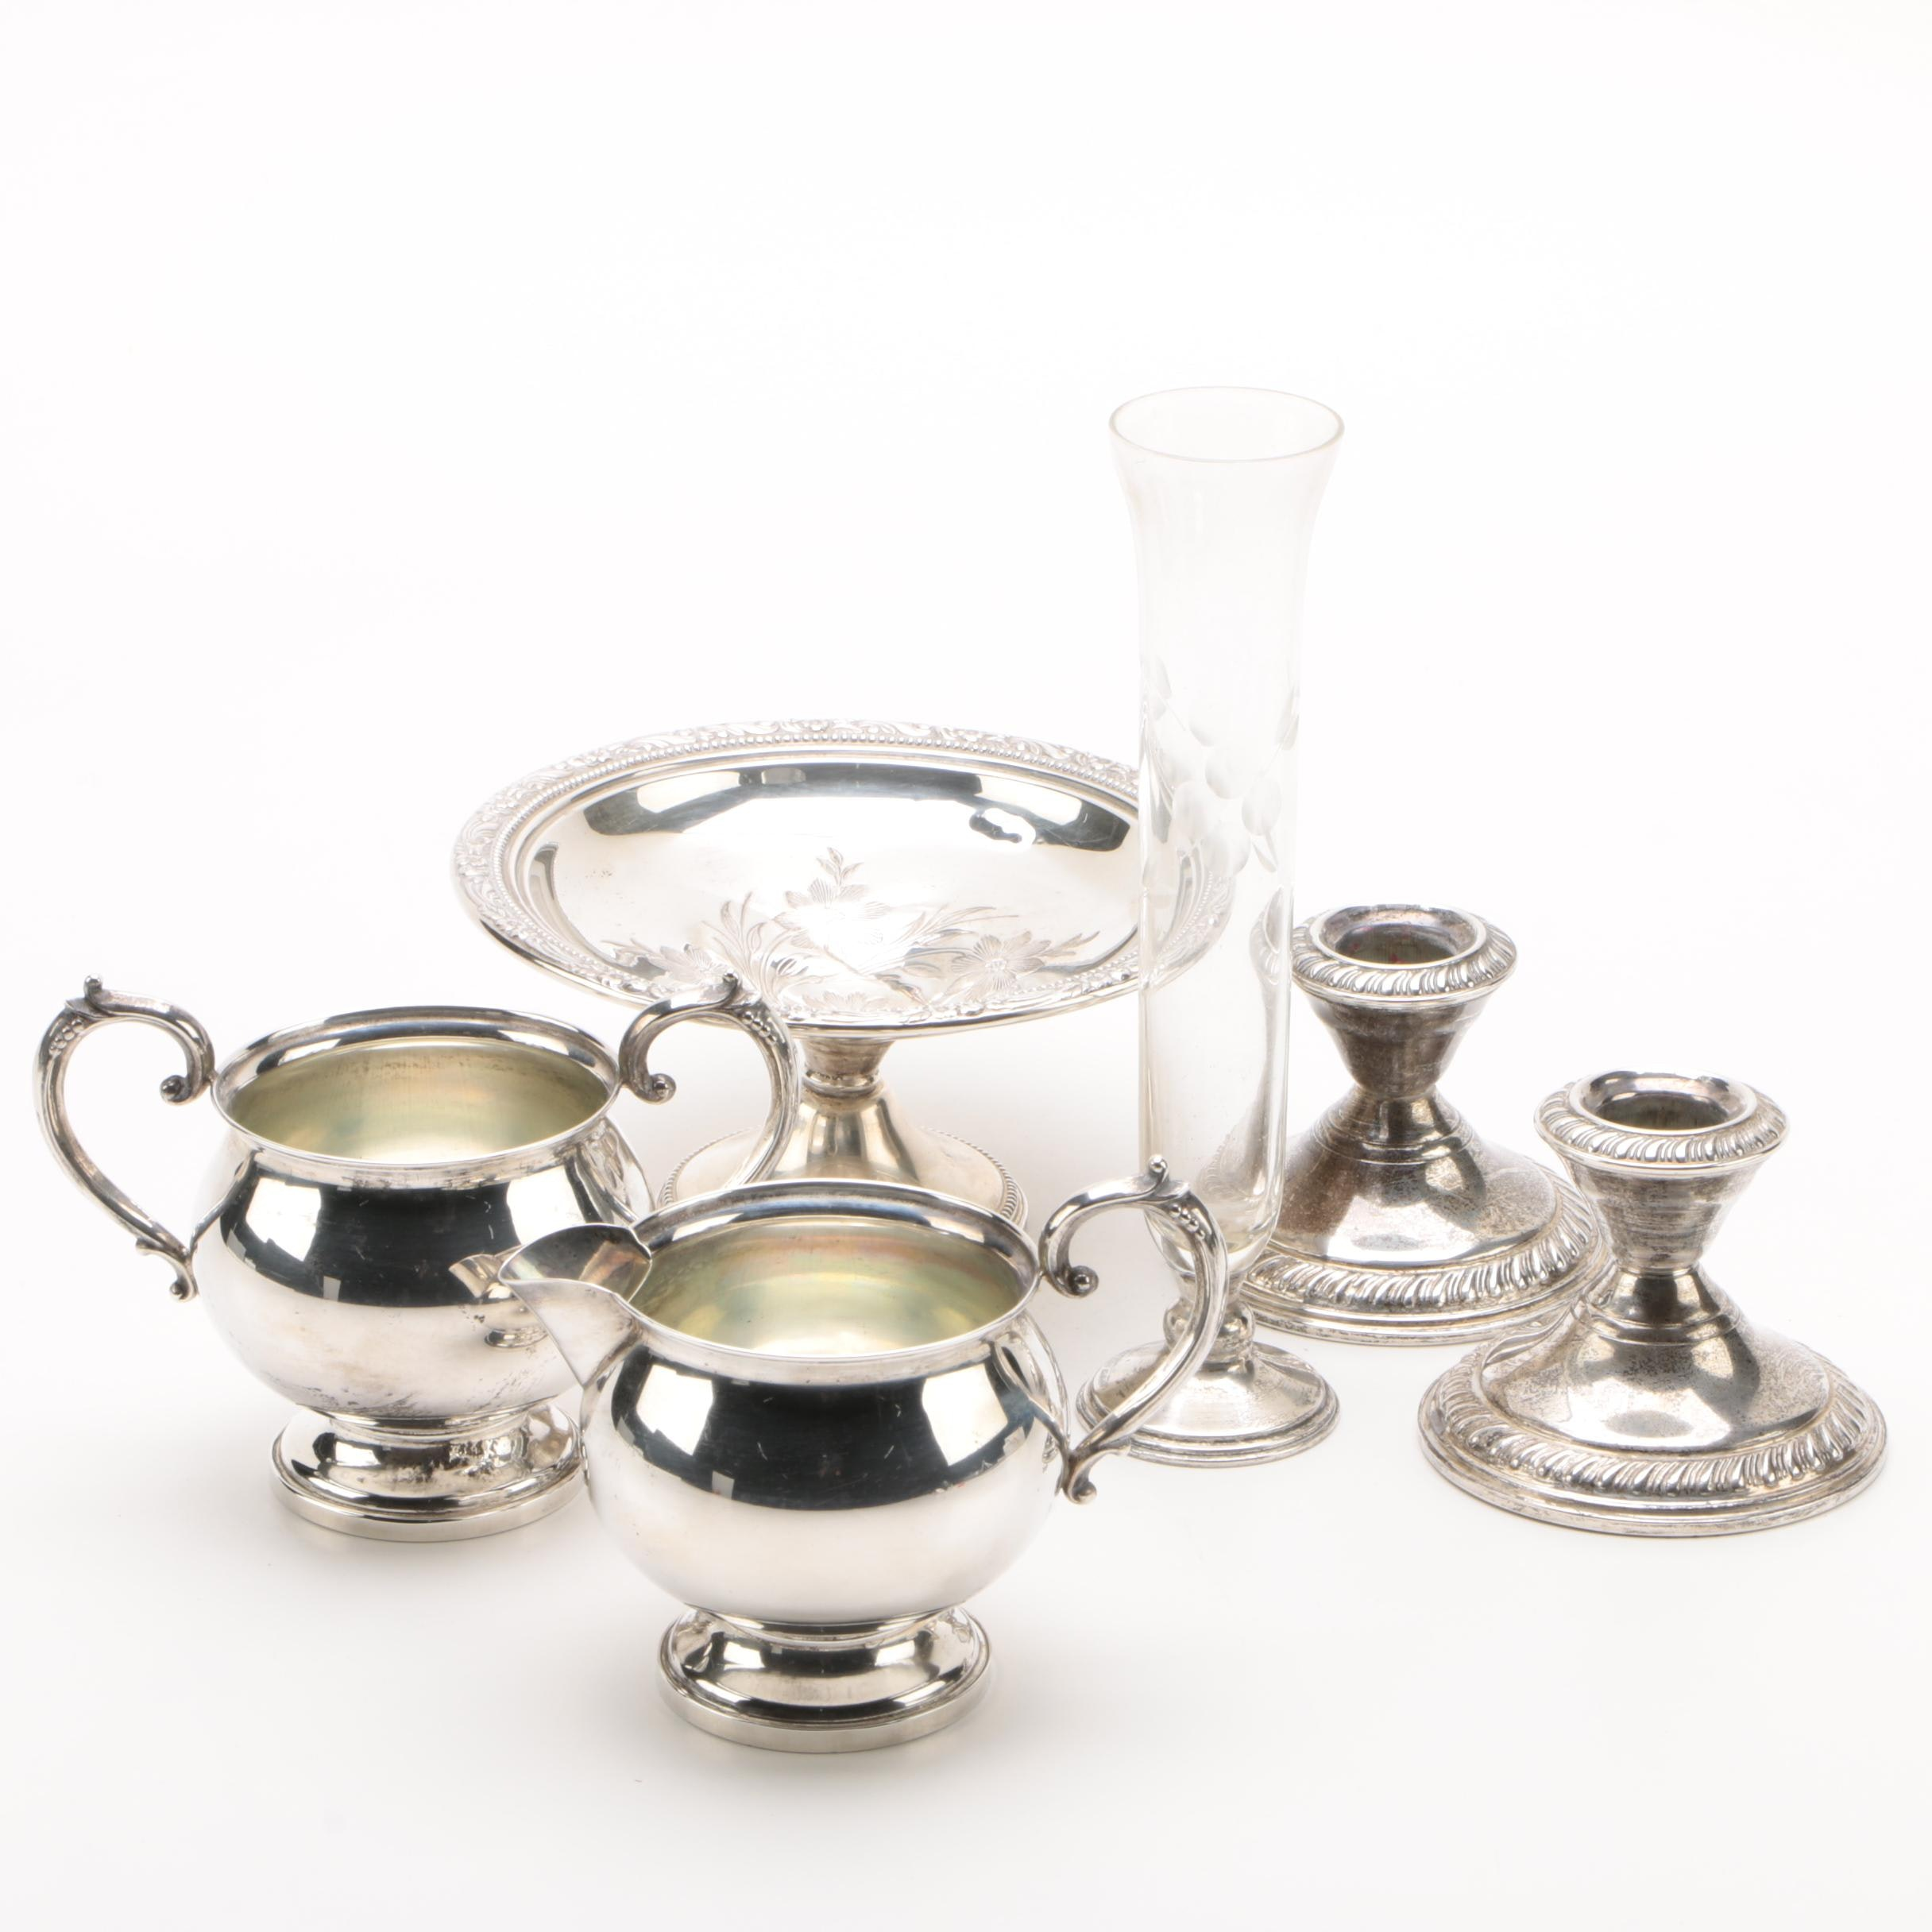 Fisher Silversmiths Creamer and Sugar Set with Other Weighted Sterling Tableware